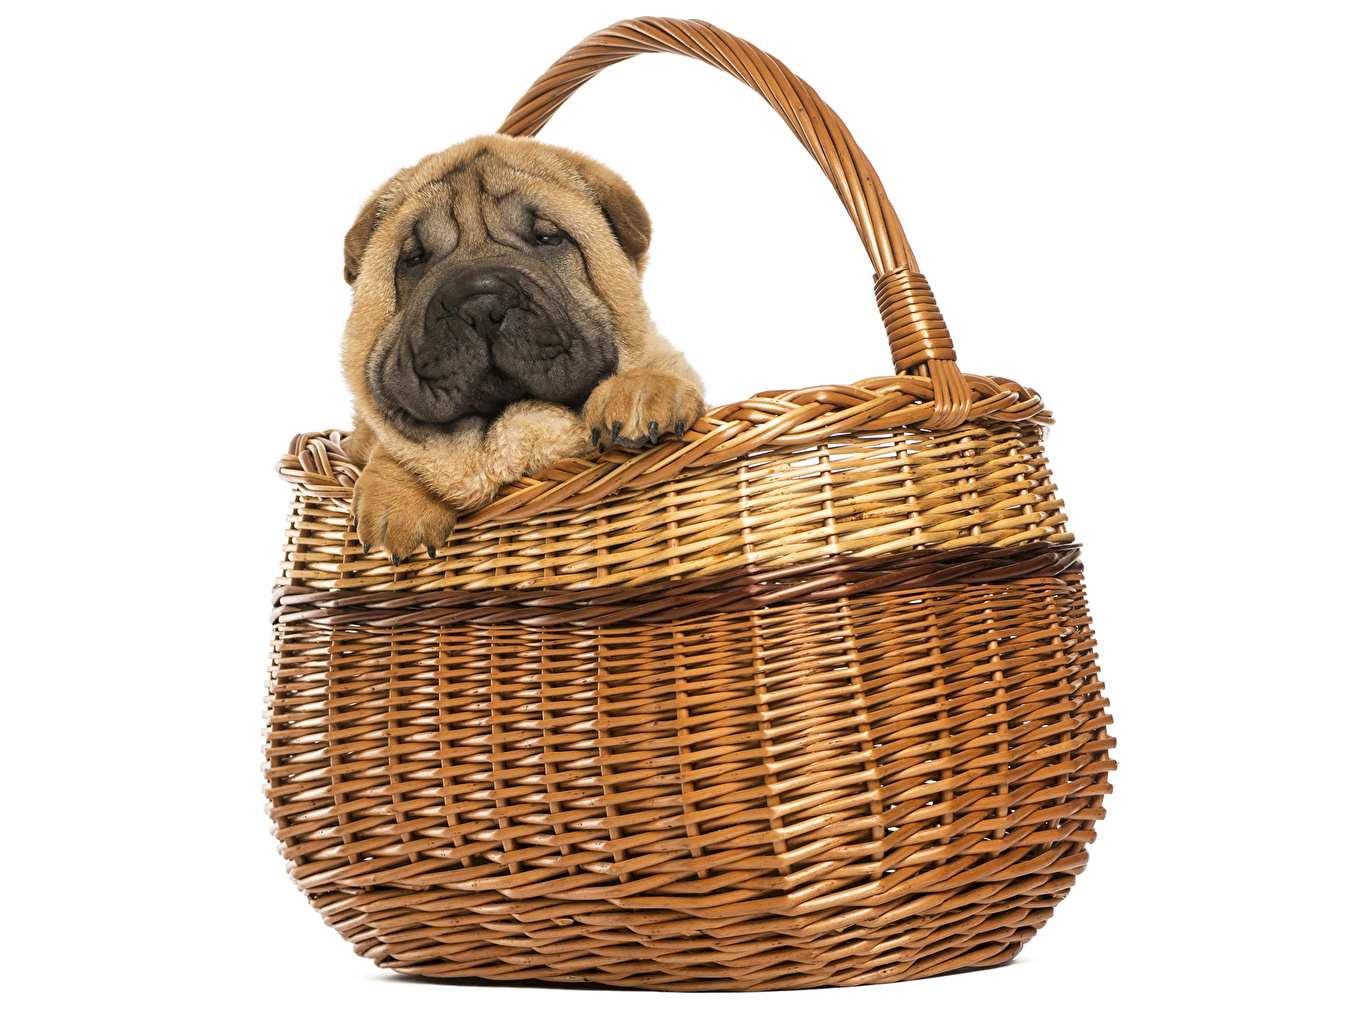 Pictures Shar Pei Dogs Wicker basket animal dog Animals